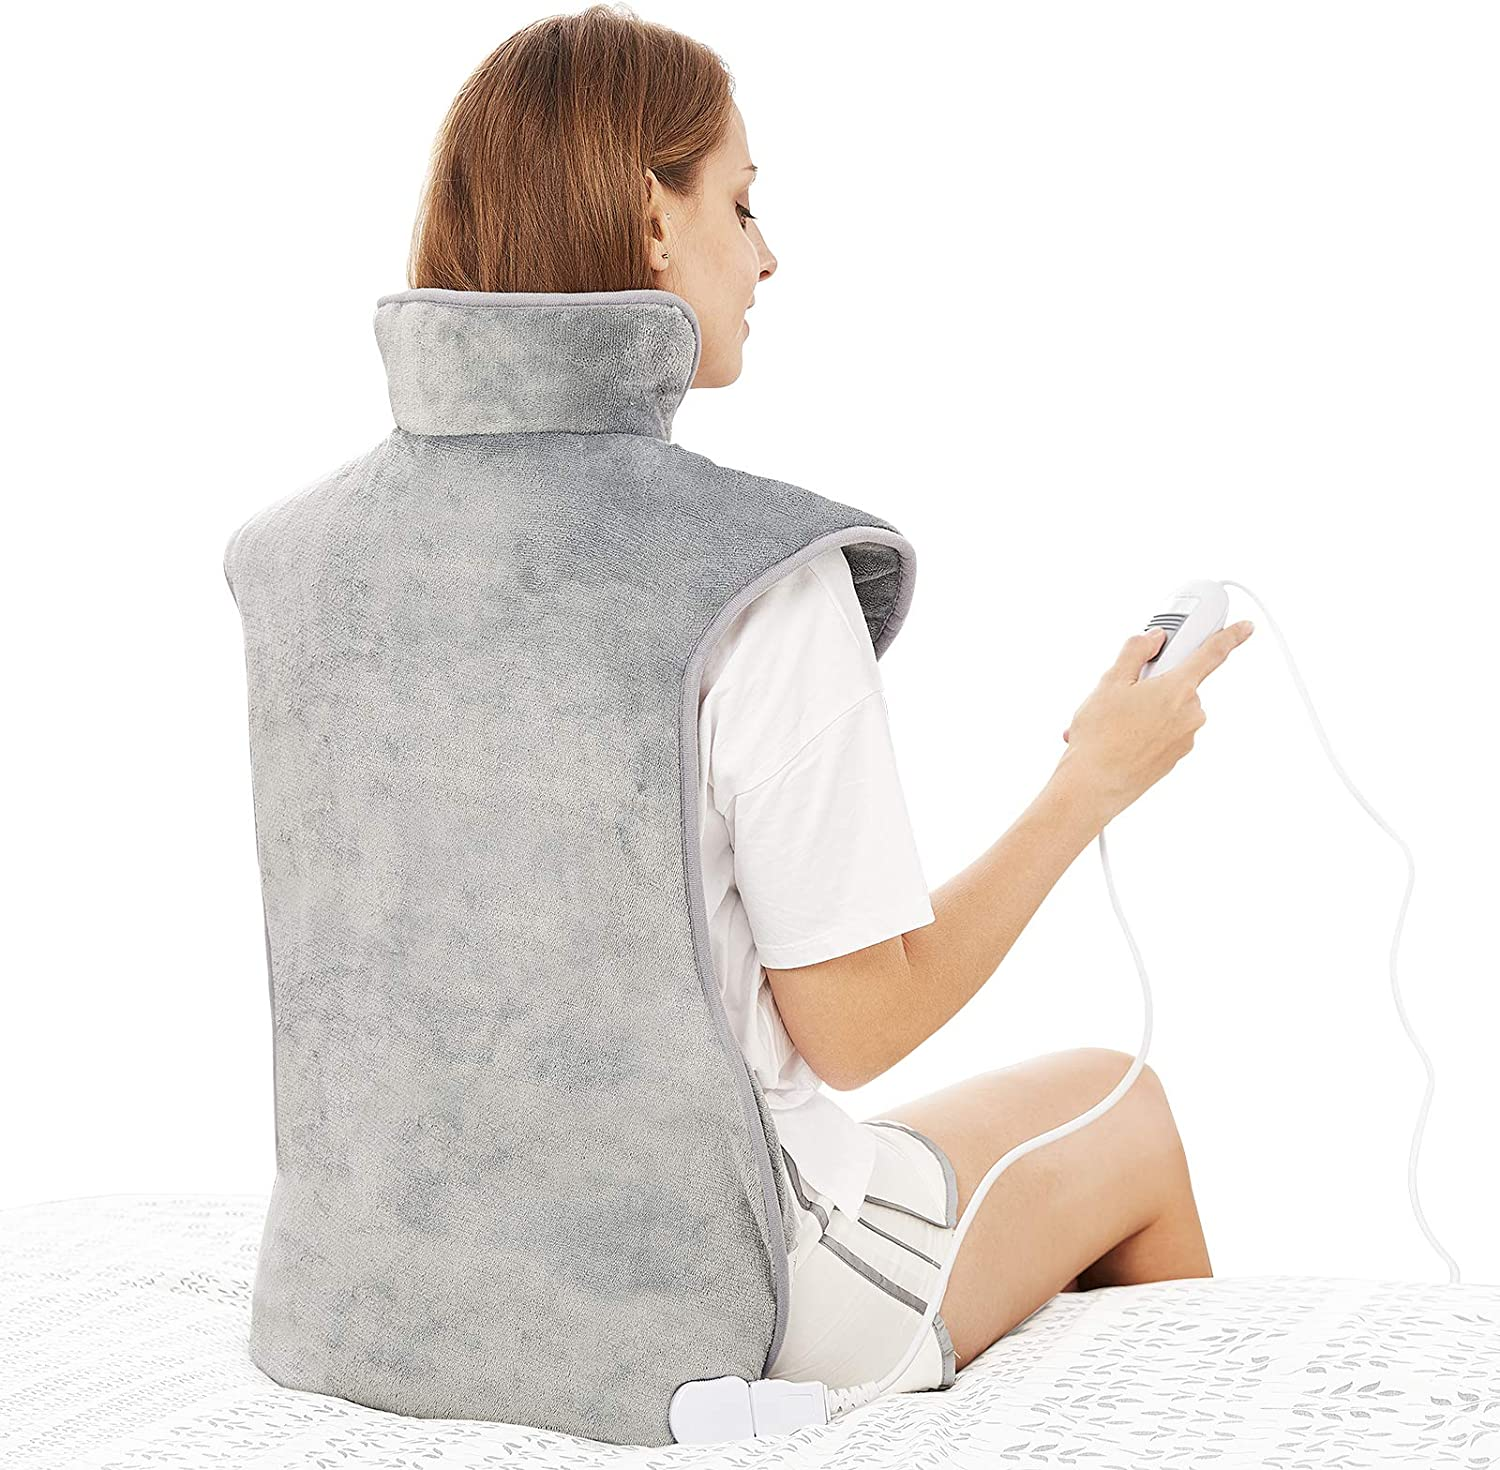 "Large Electric Heating Pad for Back Neck and Shoulders Pain Relief, 39""x23"" Fast-Heat Therapy Warp with Waist Strap, 3 Heat Levels, Auto-Off Timer, Mia&Coco - Comfort Grey"